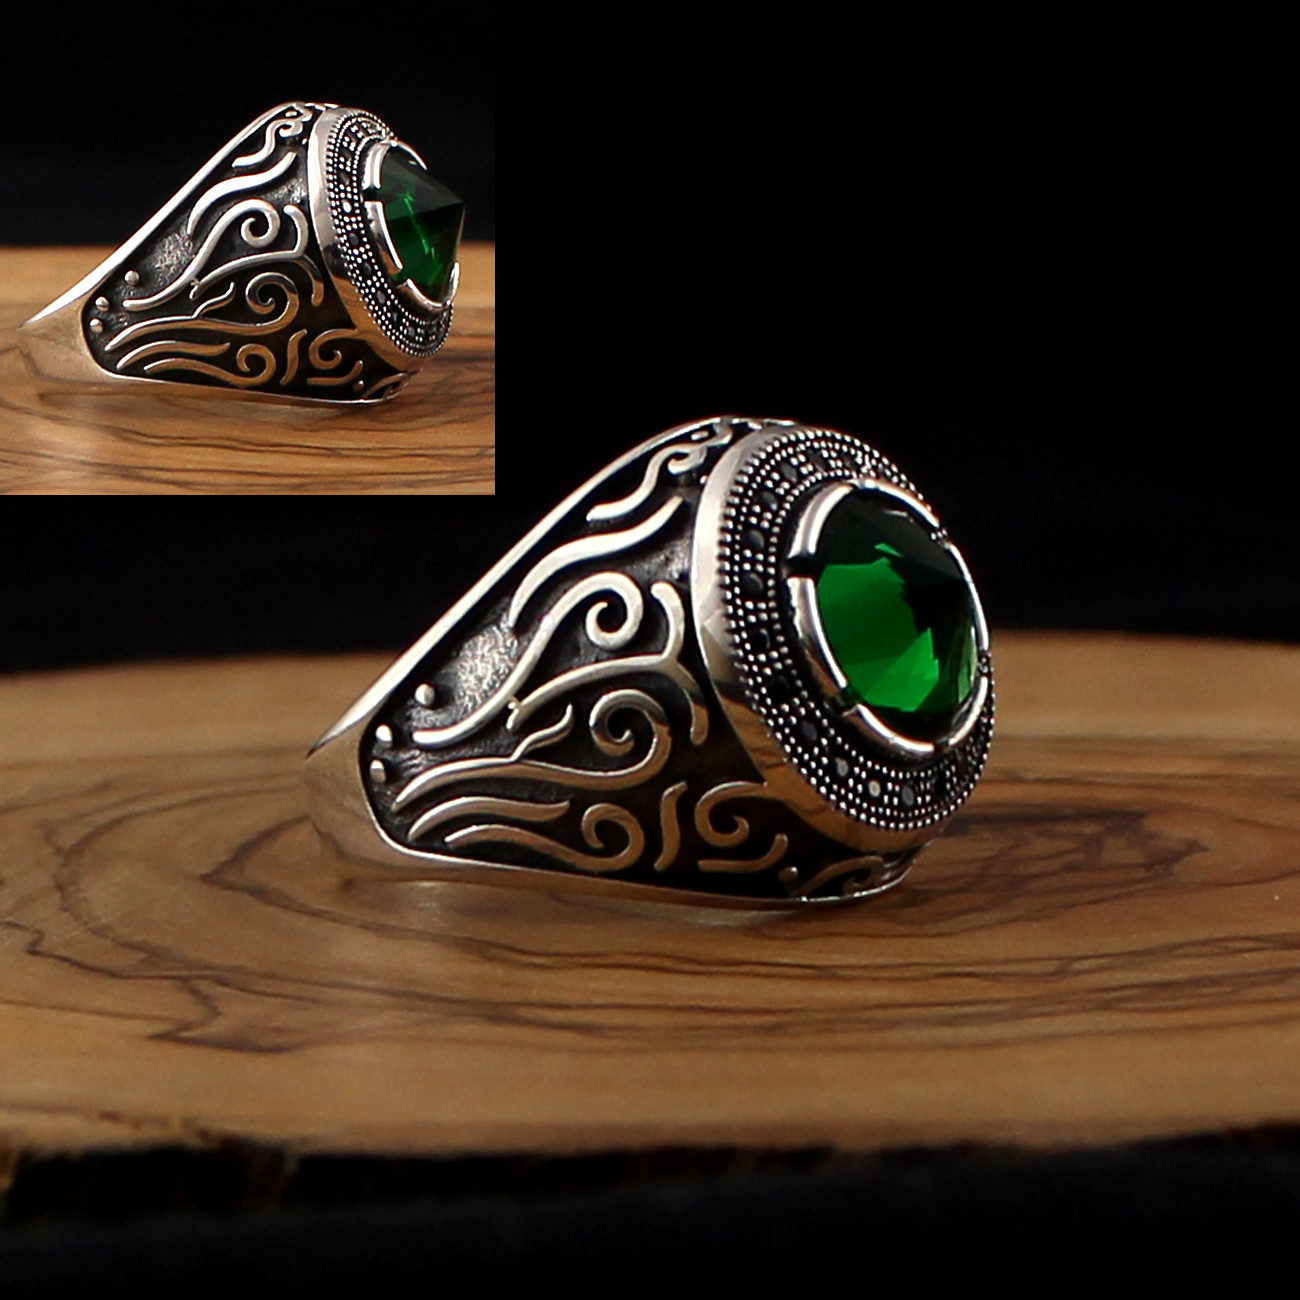 925 Sterling Silver Ring For Men Green Zircon Stone Jewelry Fashion Vintage Gift Onyx Aqeq Mens Rings All Size (made In Turkey)